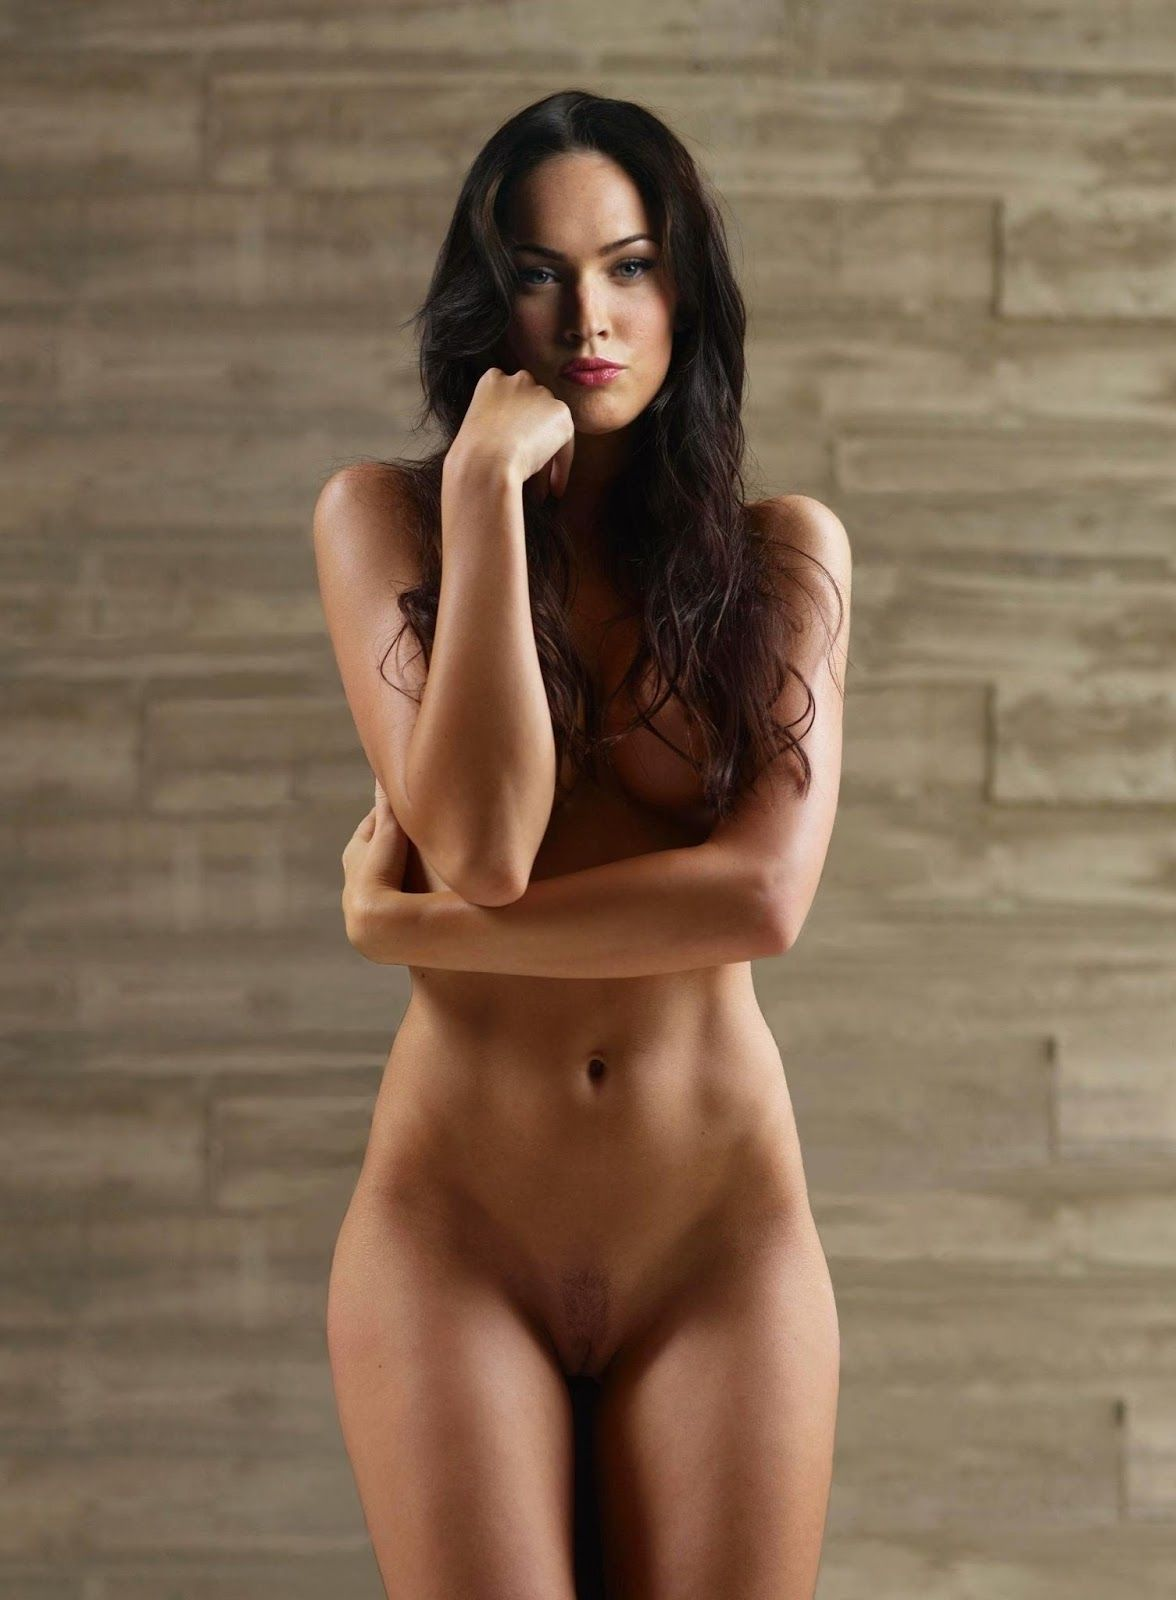 Best naked pictures